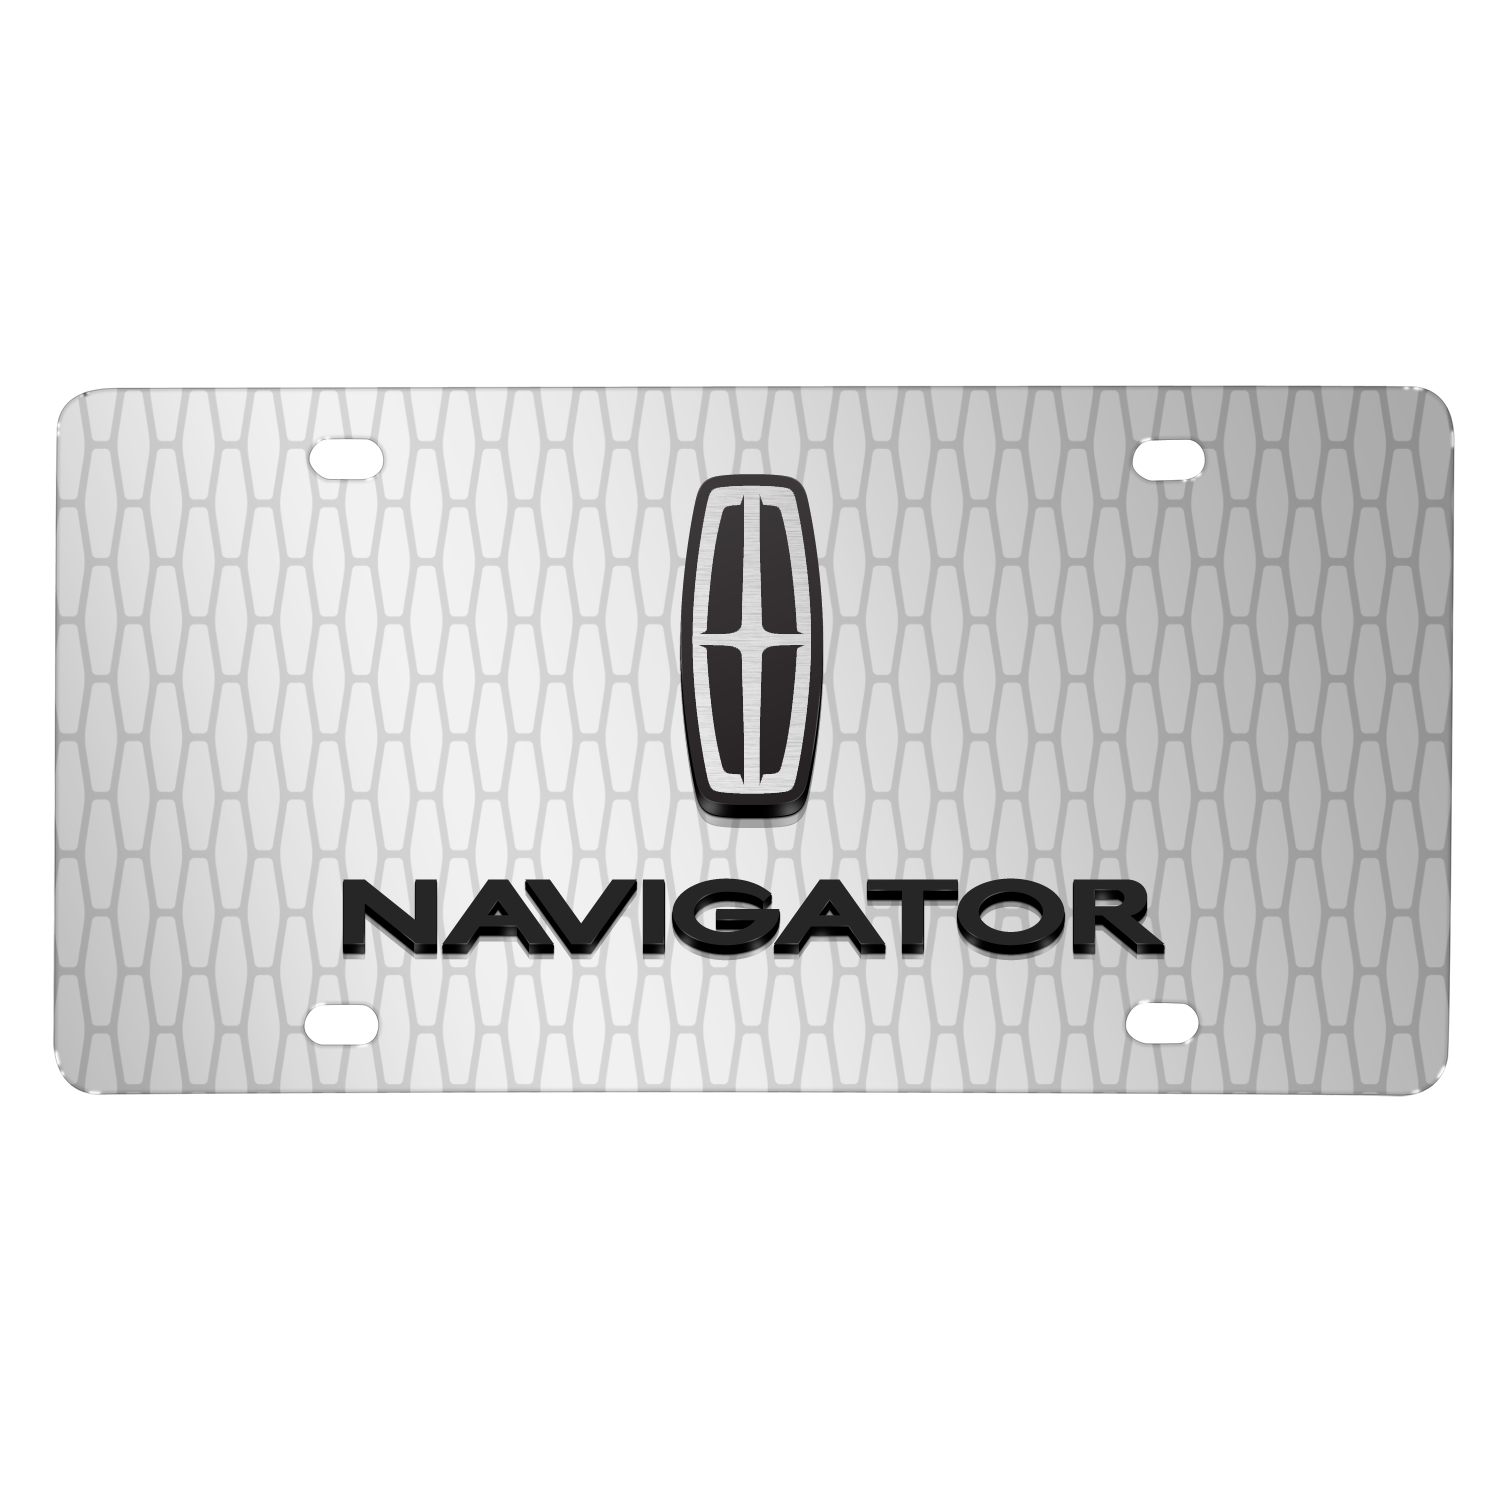 "Lincoln Navigator 3D Logo on Front Grill pattern 12""x6"" Brushed Aluminum License Plate"